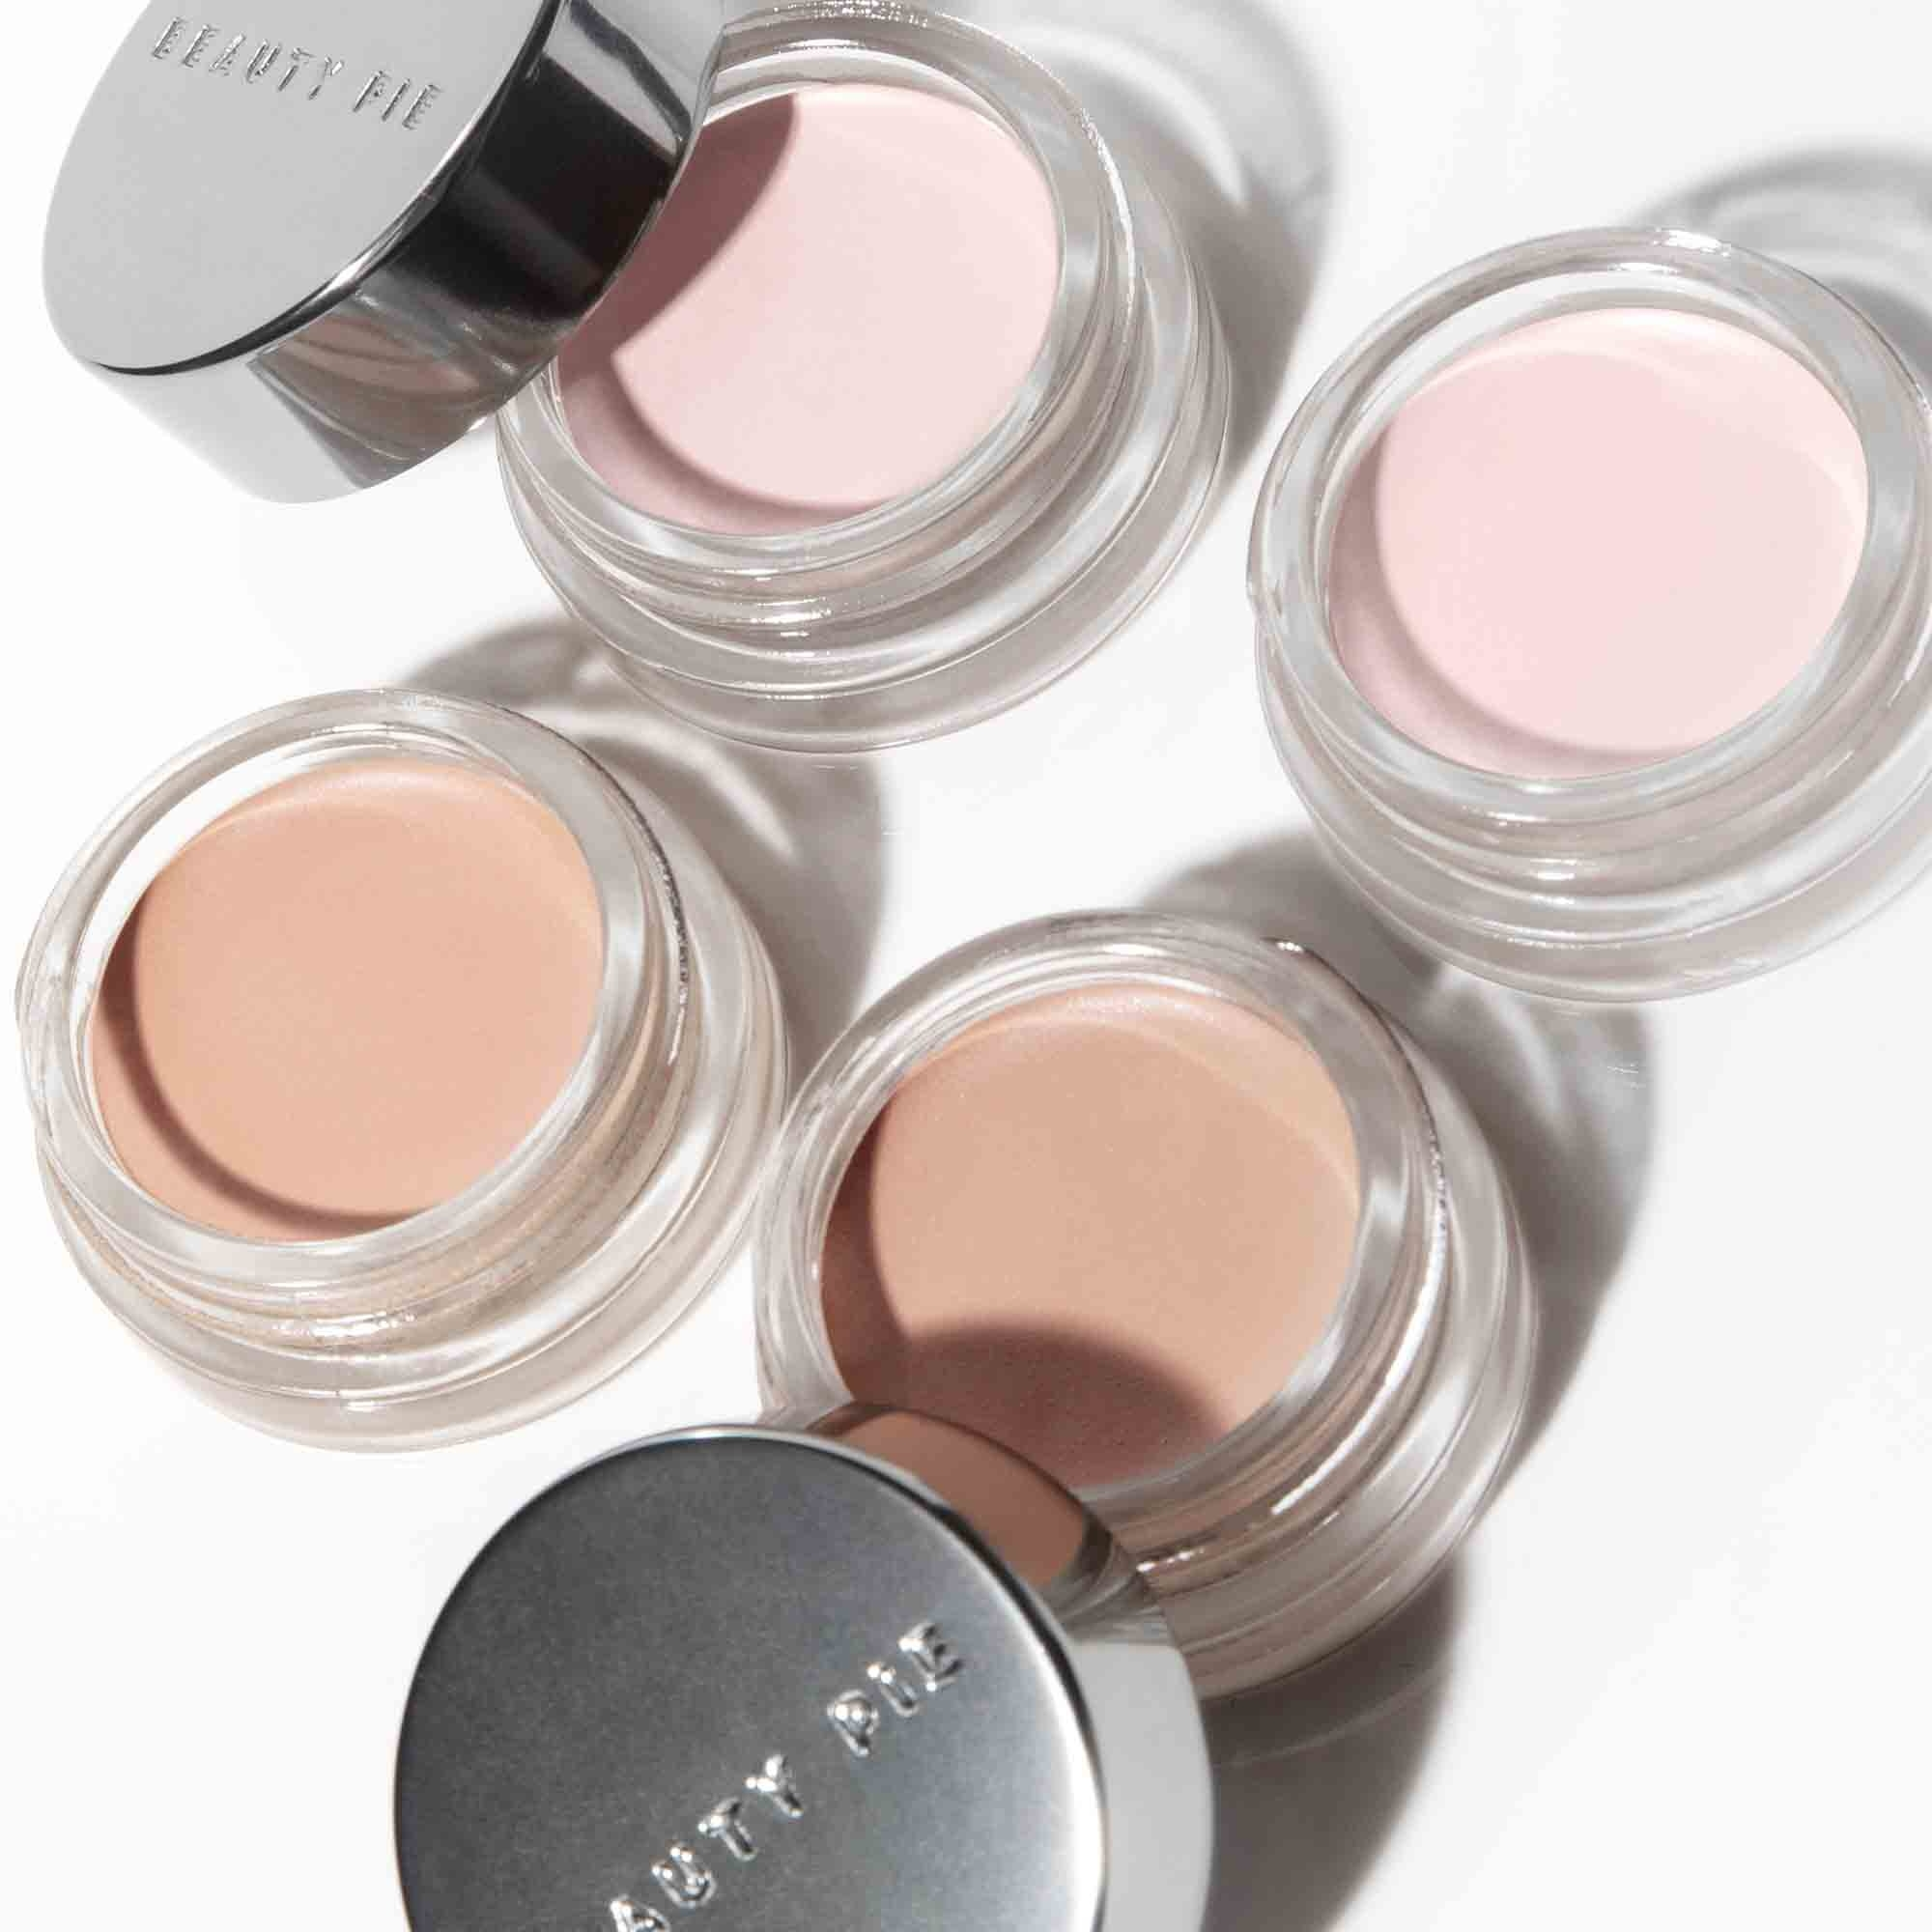 Four shades of Superluminous Undereye Genius with lids off